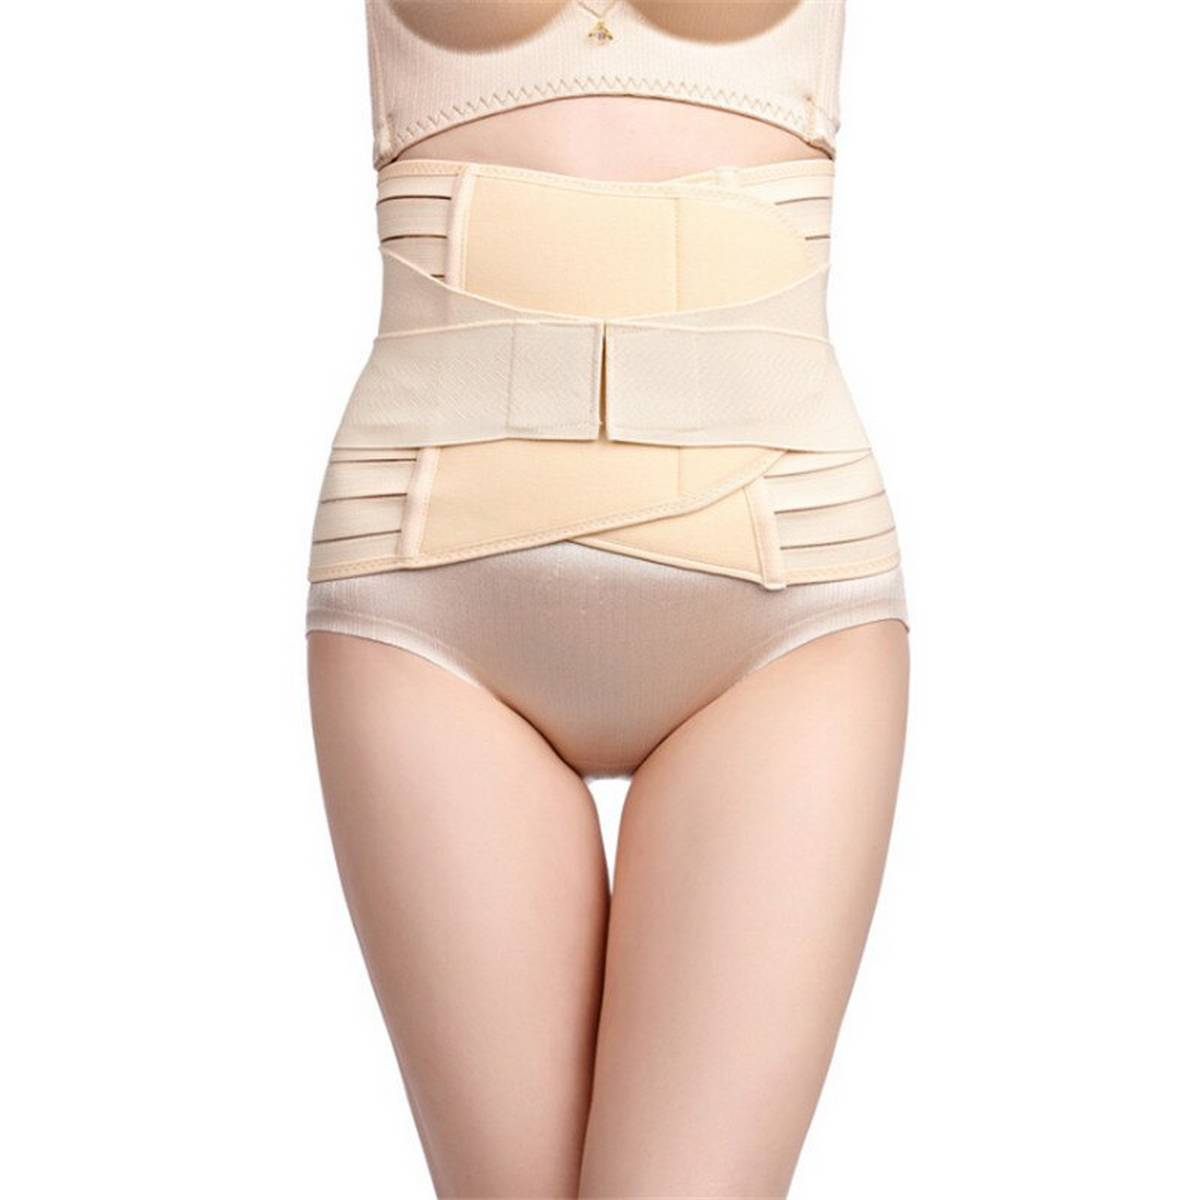 New Arrival Maternity Bandage After Pregnancyy Belt Postpartum Belly Band Belt For Pregnant Women Post-partum Support Intimates